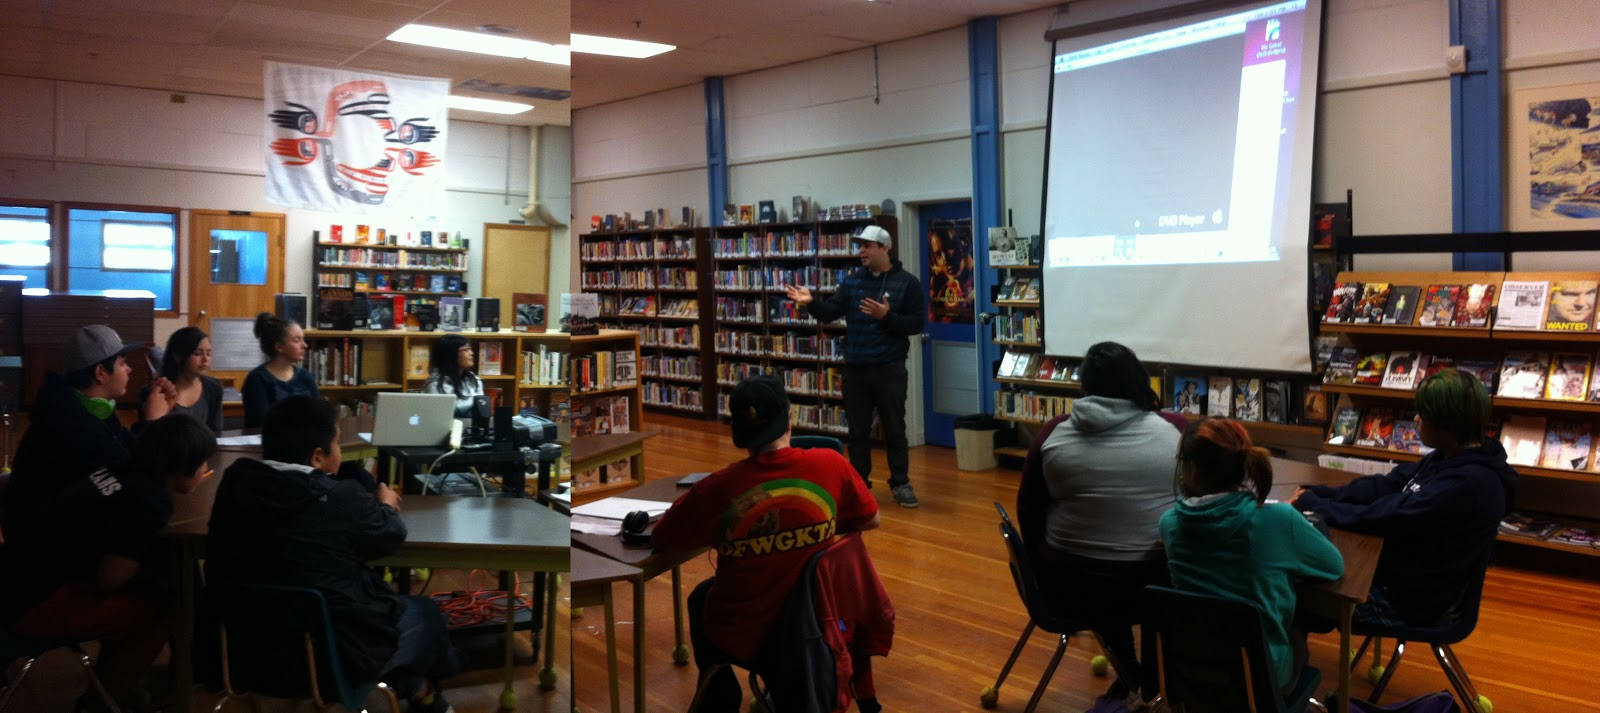 Nate takes his turn at inspiring the students in the school library.